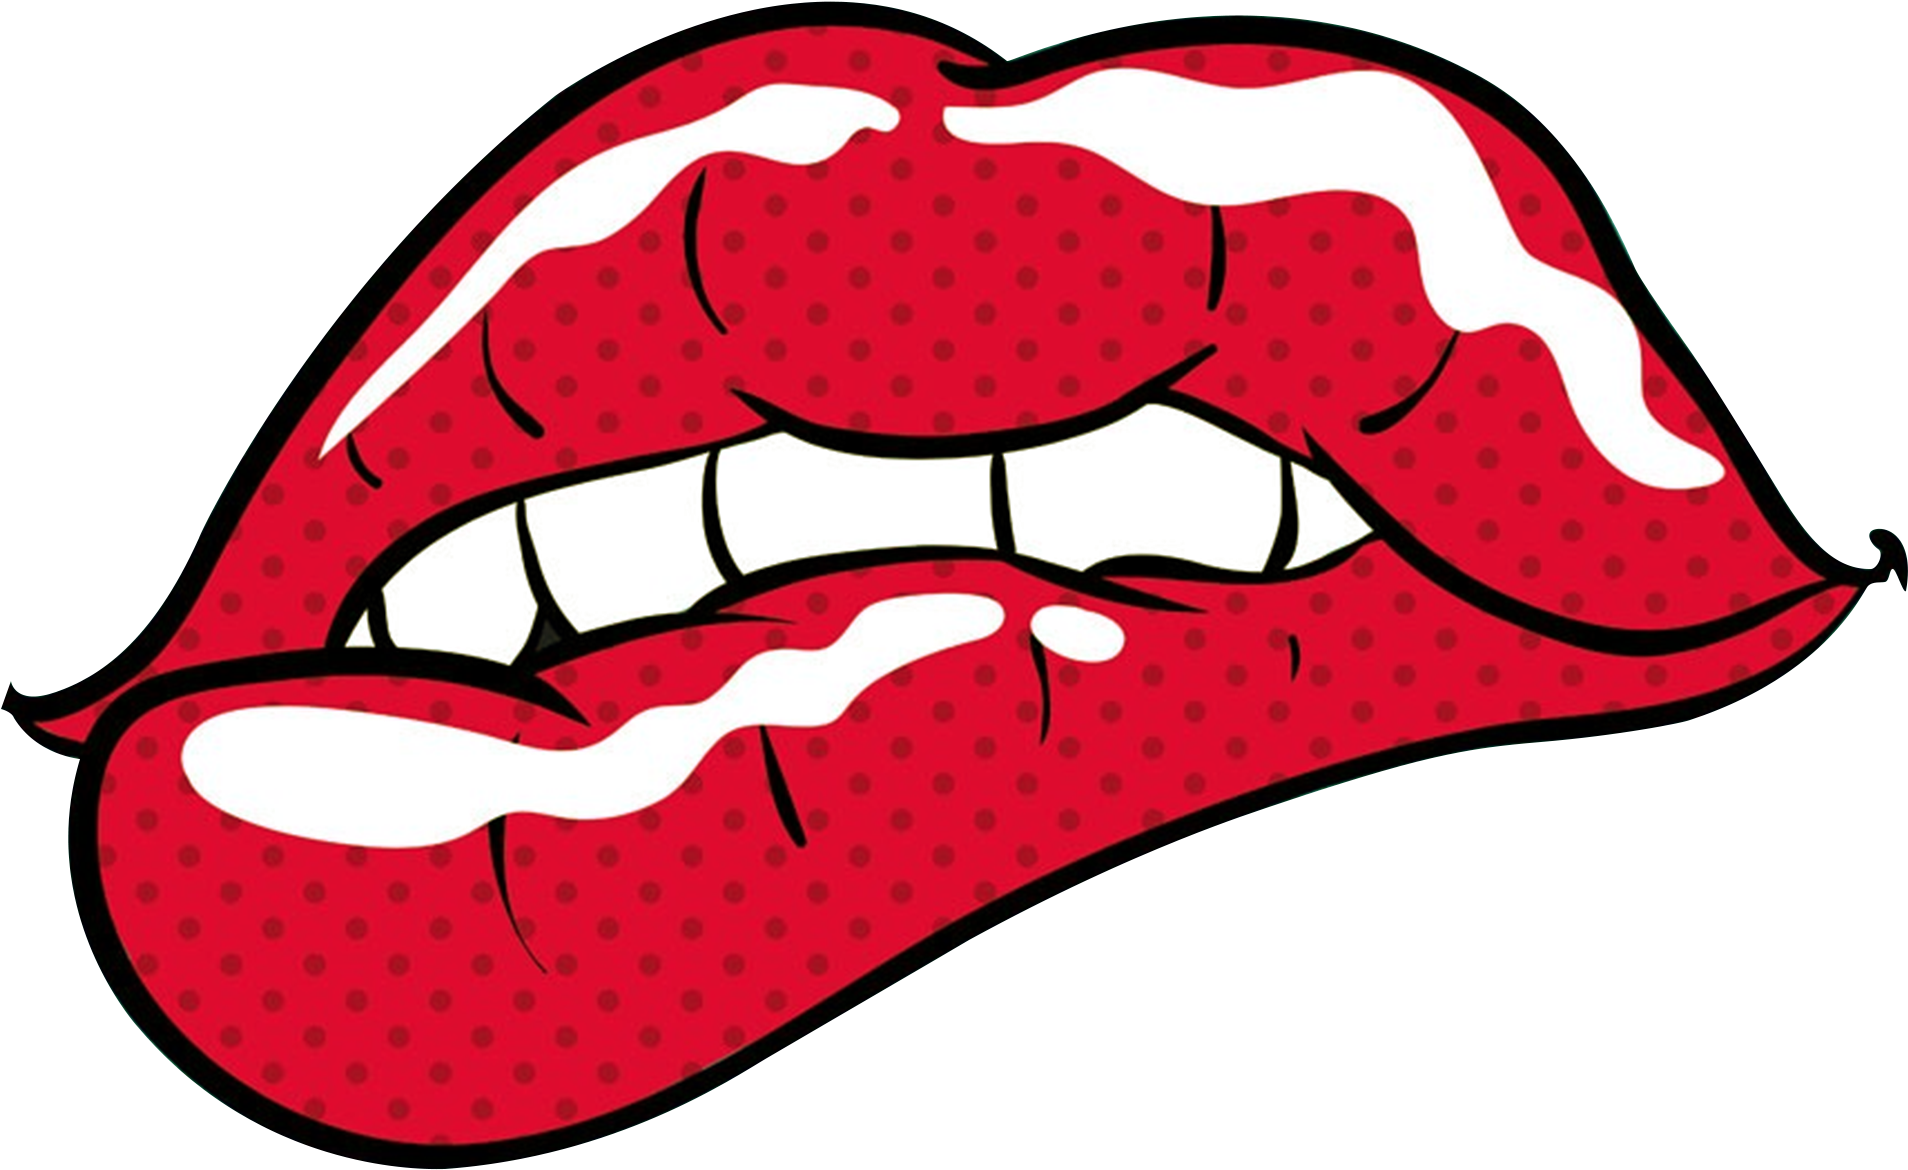 Download Pop Art Lips Clipart Full Size Clipart 2102638 Pinclipart